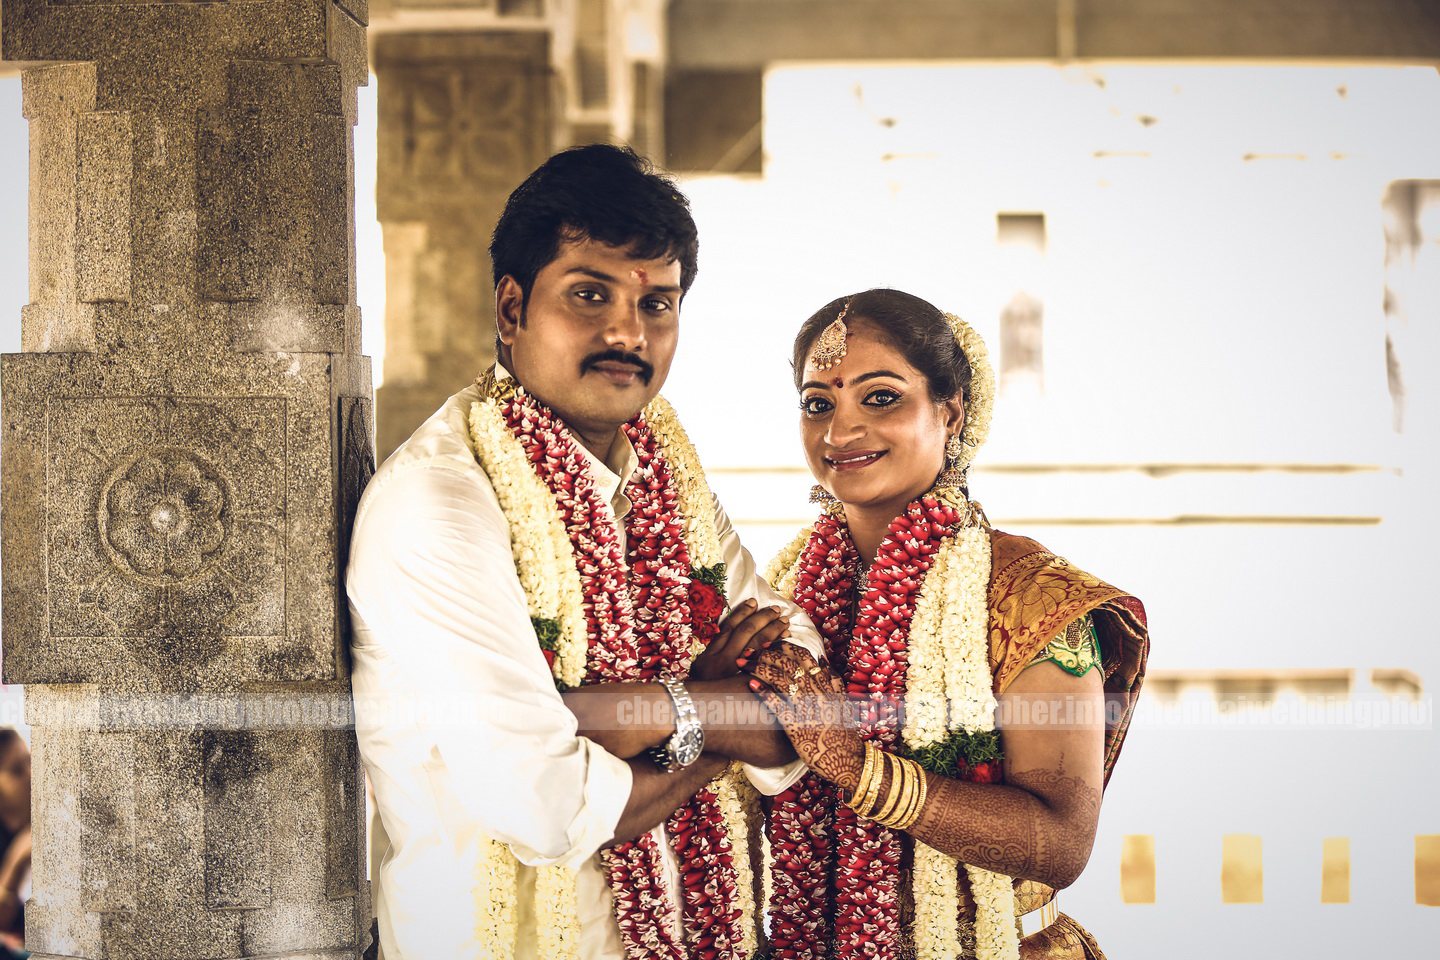 chennai tamil weddings candid photos